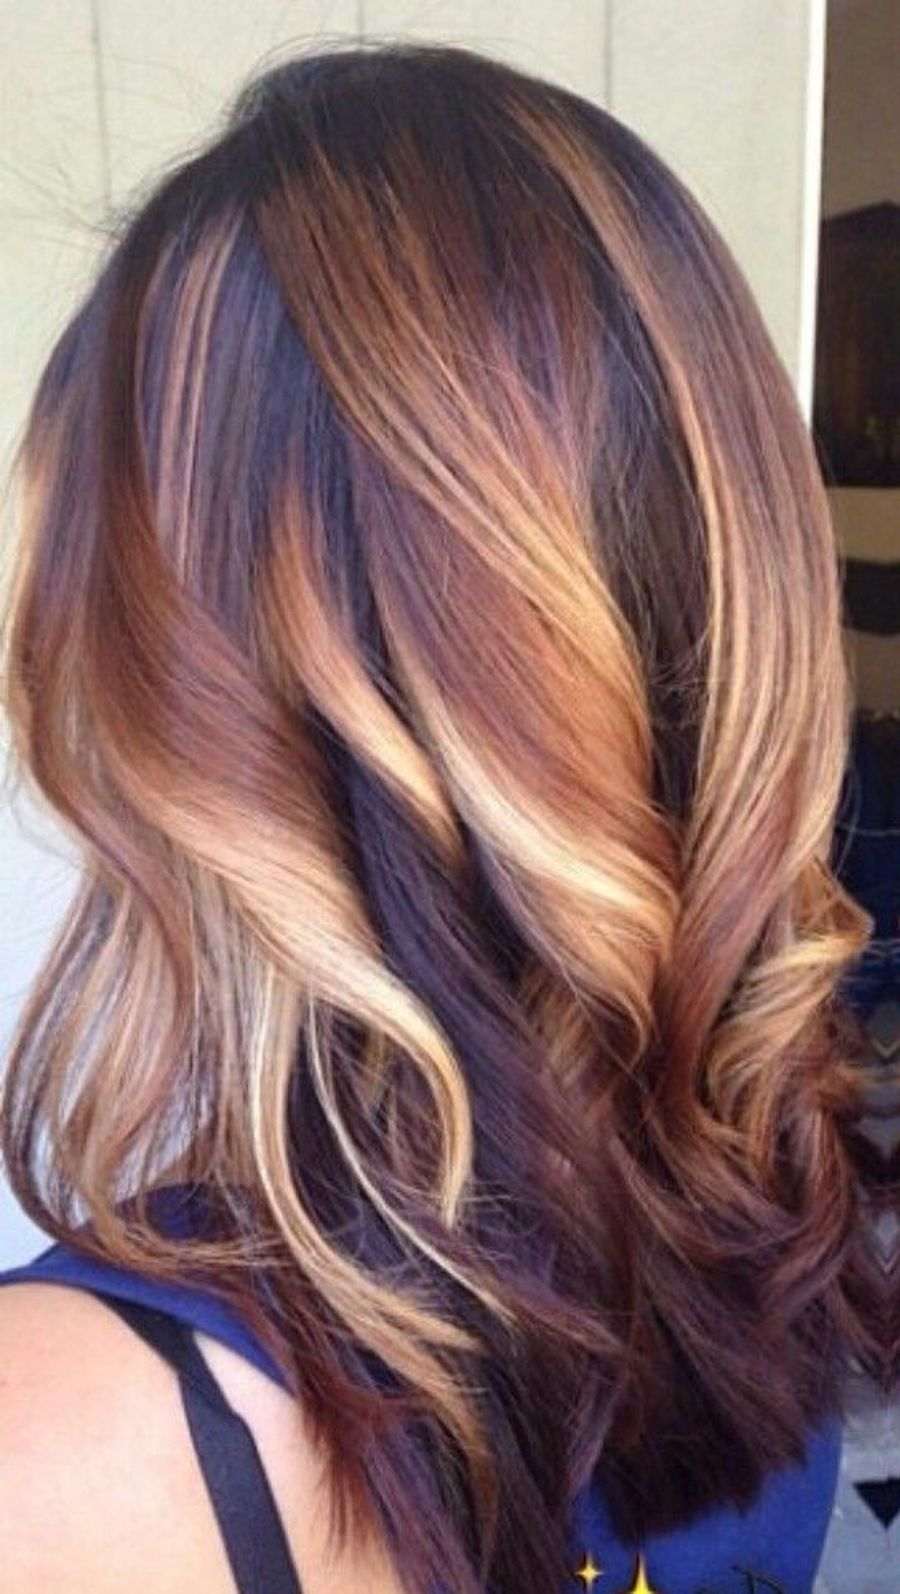 Inspiring haircolor style for winter and fall 44